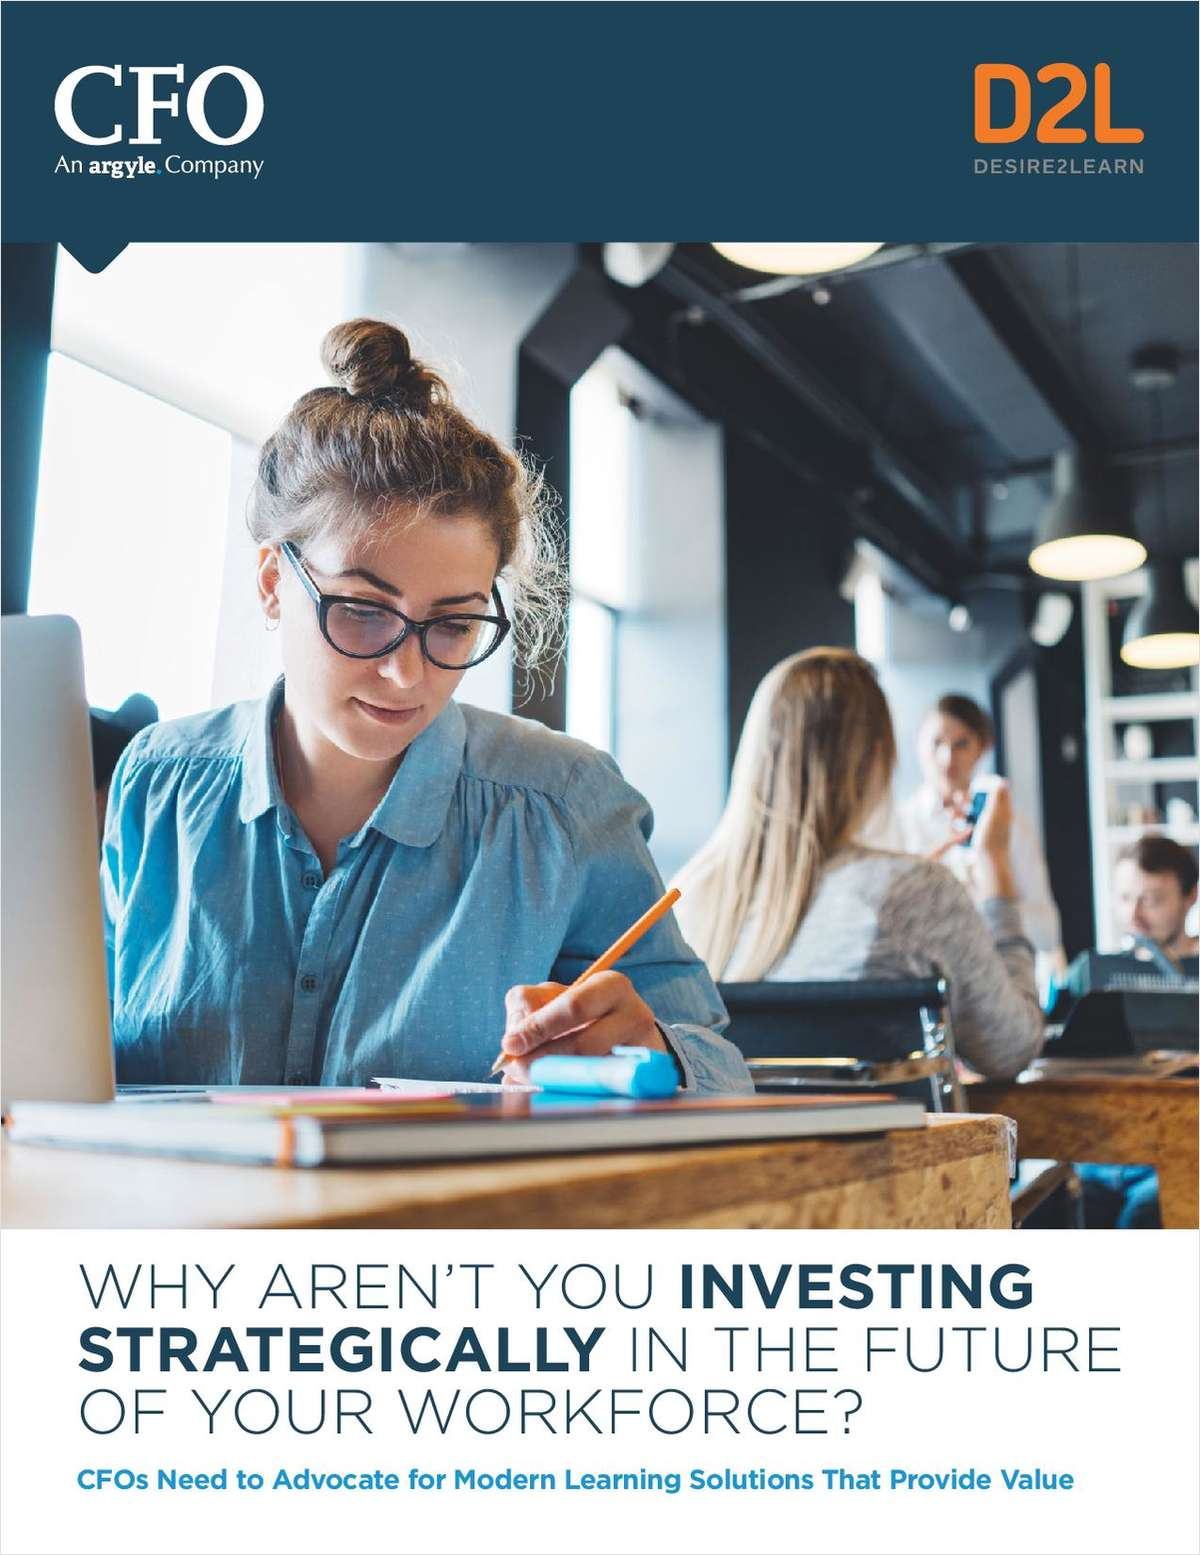 WHY AREN'T YOU INVESTING  STRATEGICALLY IN THE FUTURE  OF YOUR WORKFORCE?